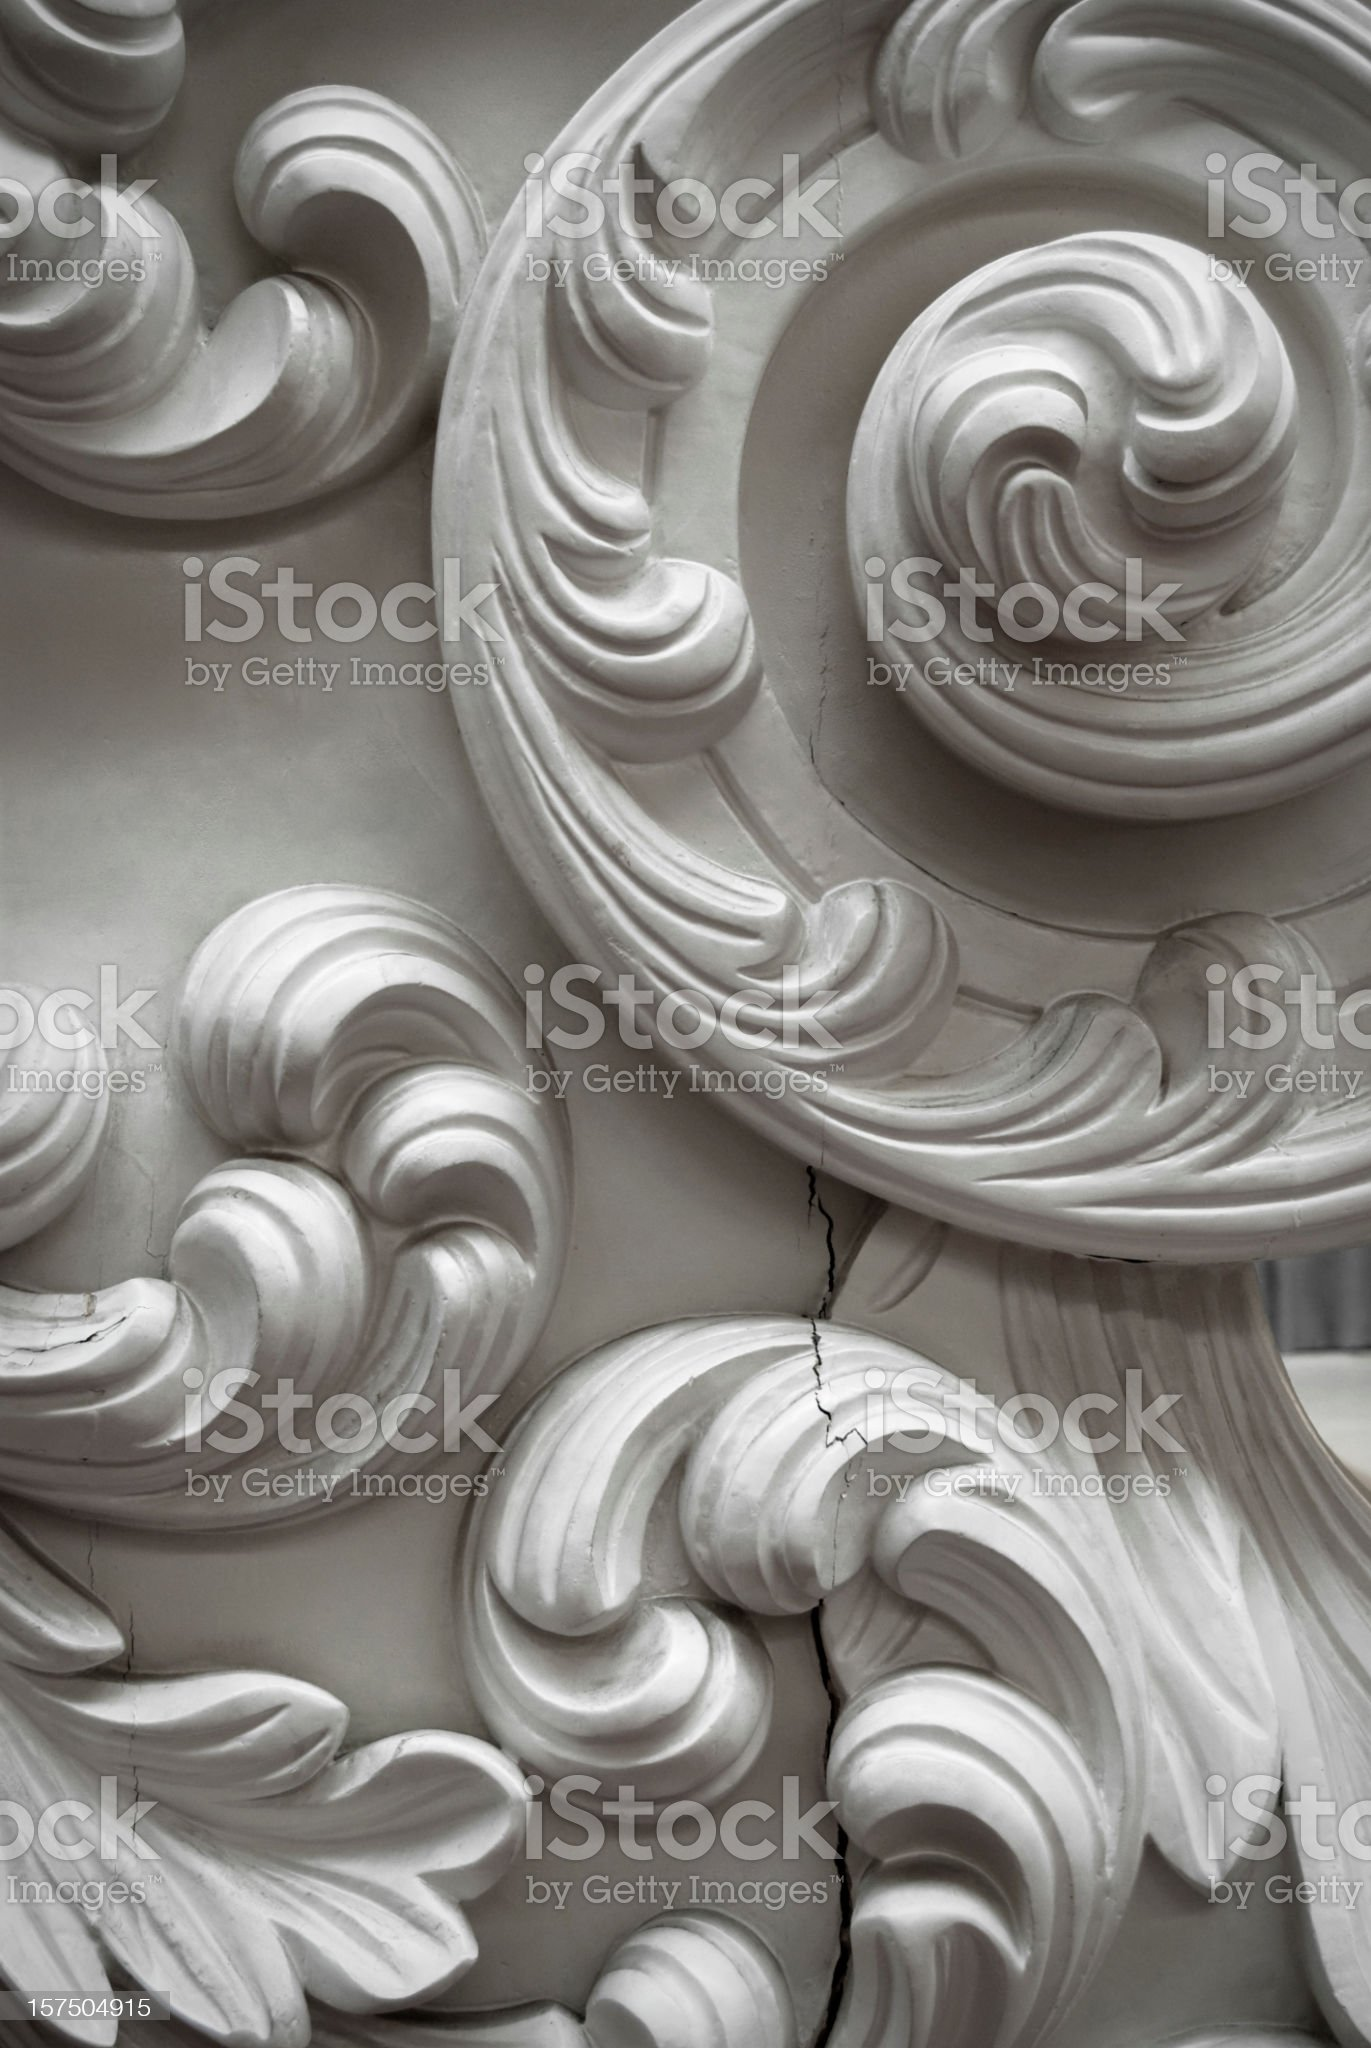 Ornate Carved Wood royalty-free stock photo